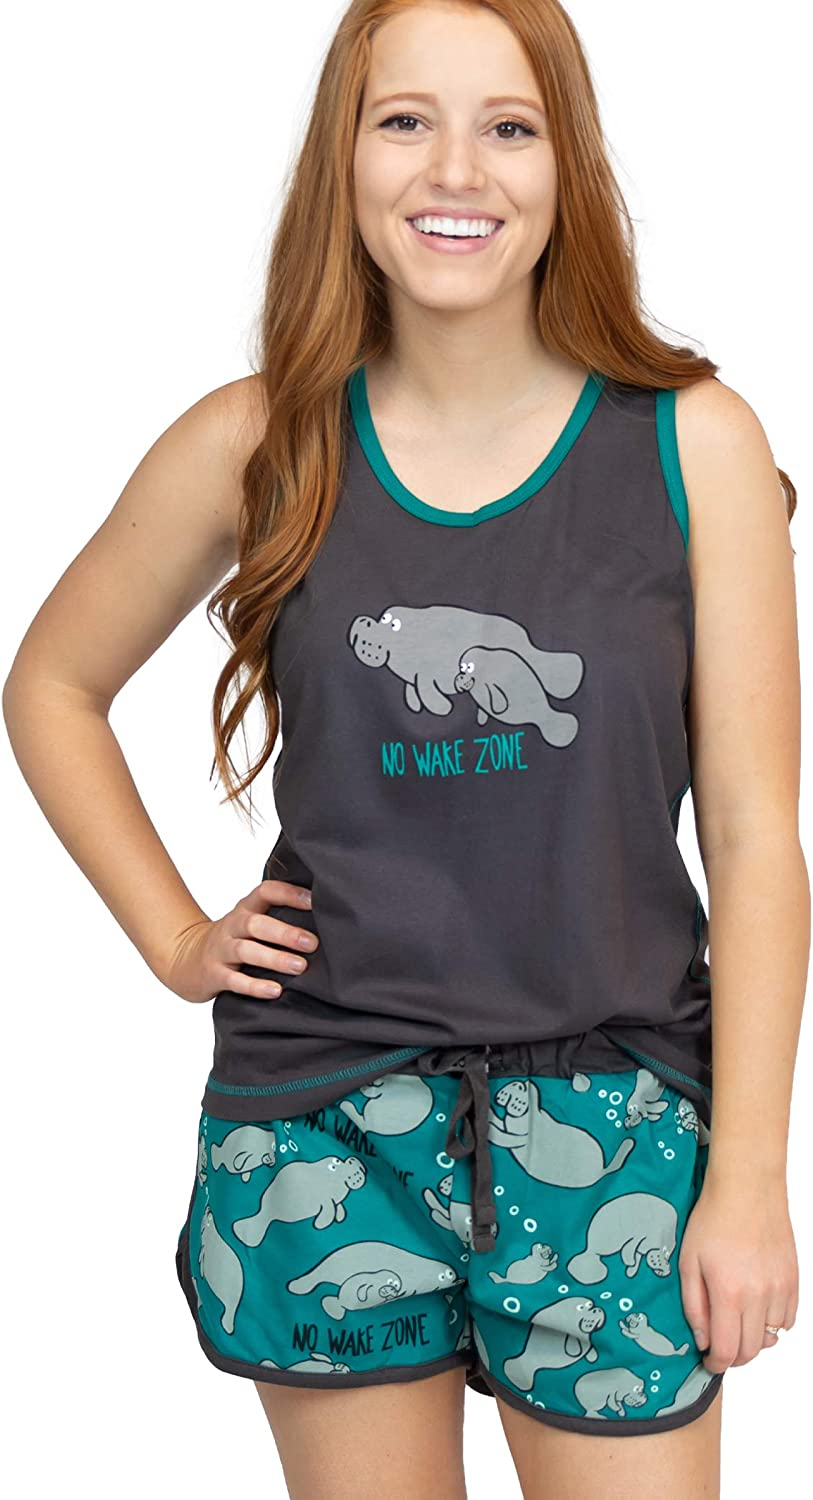 Lazy One Matching Pajamas for Women, Cute Pajama Shorts and Tank Top Set